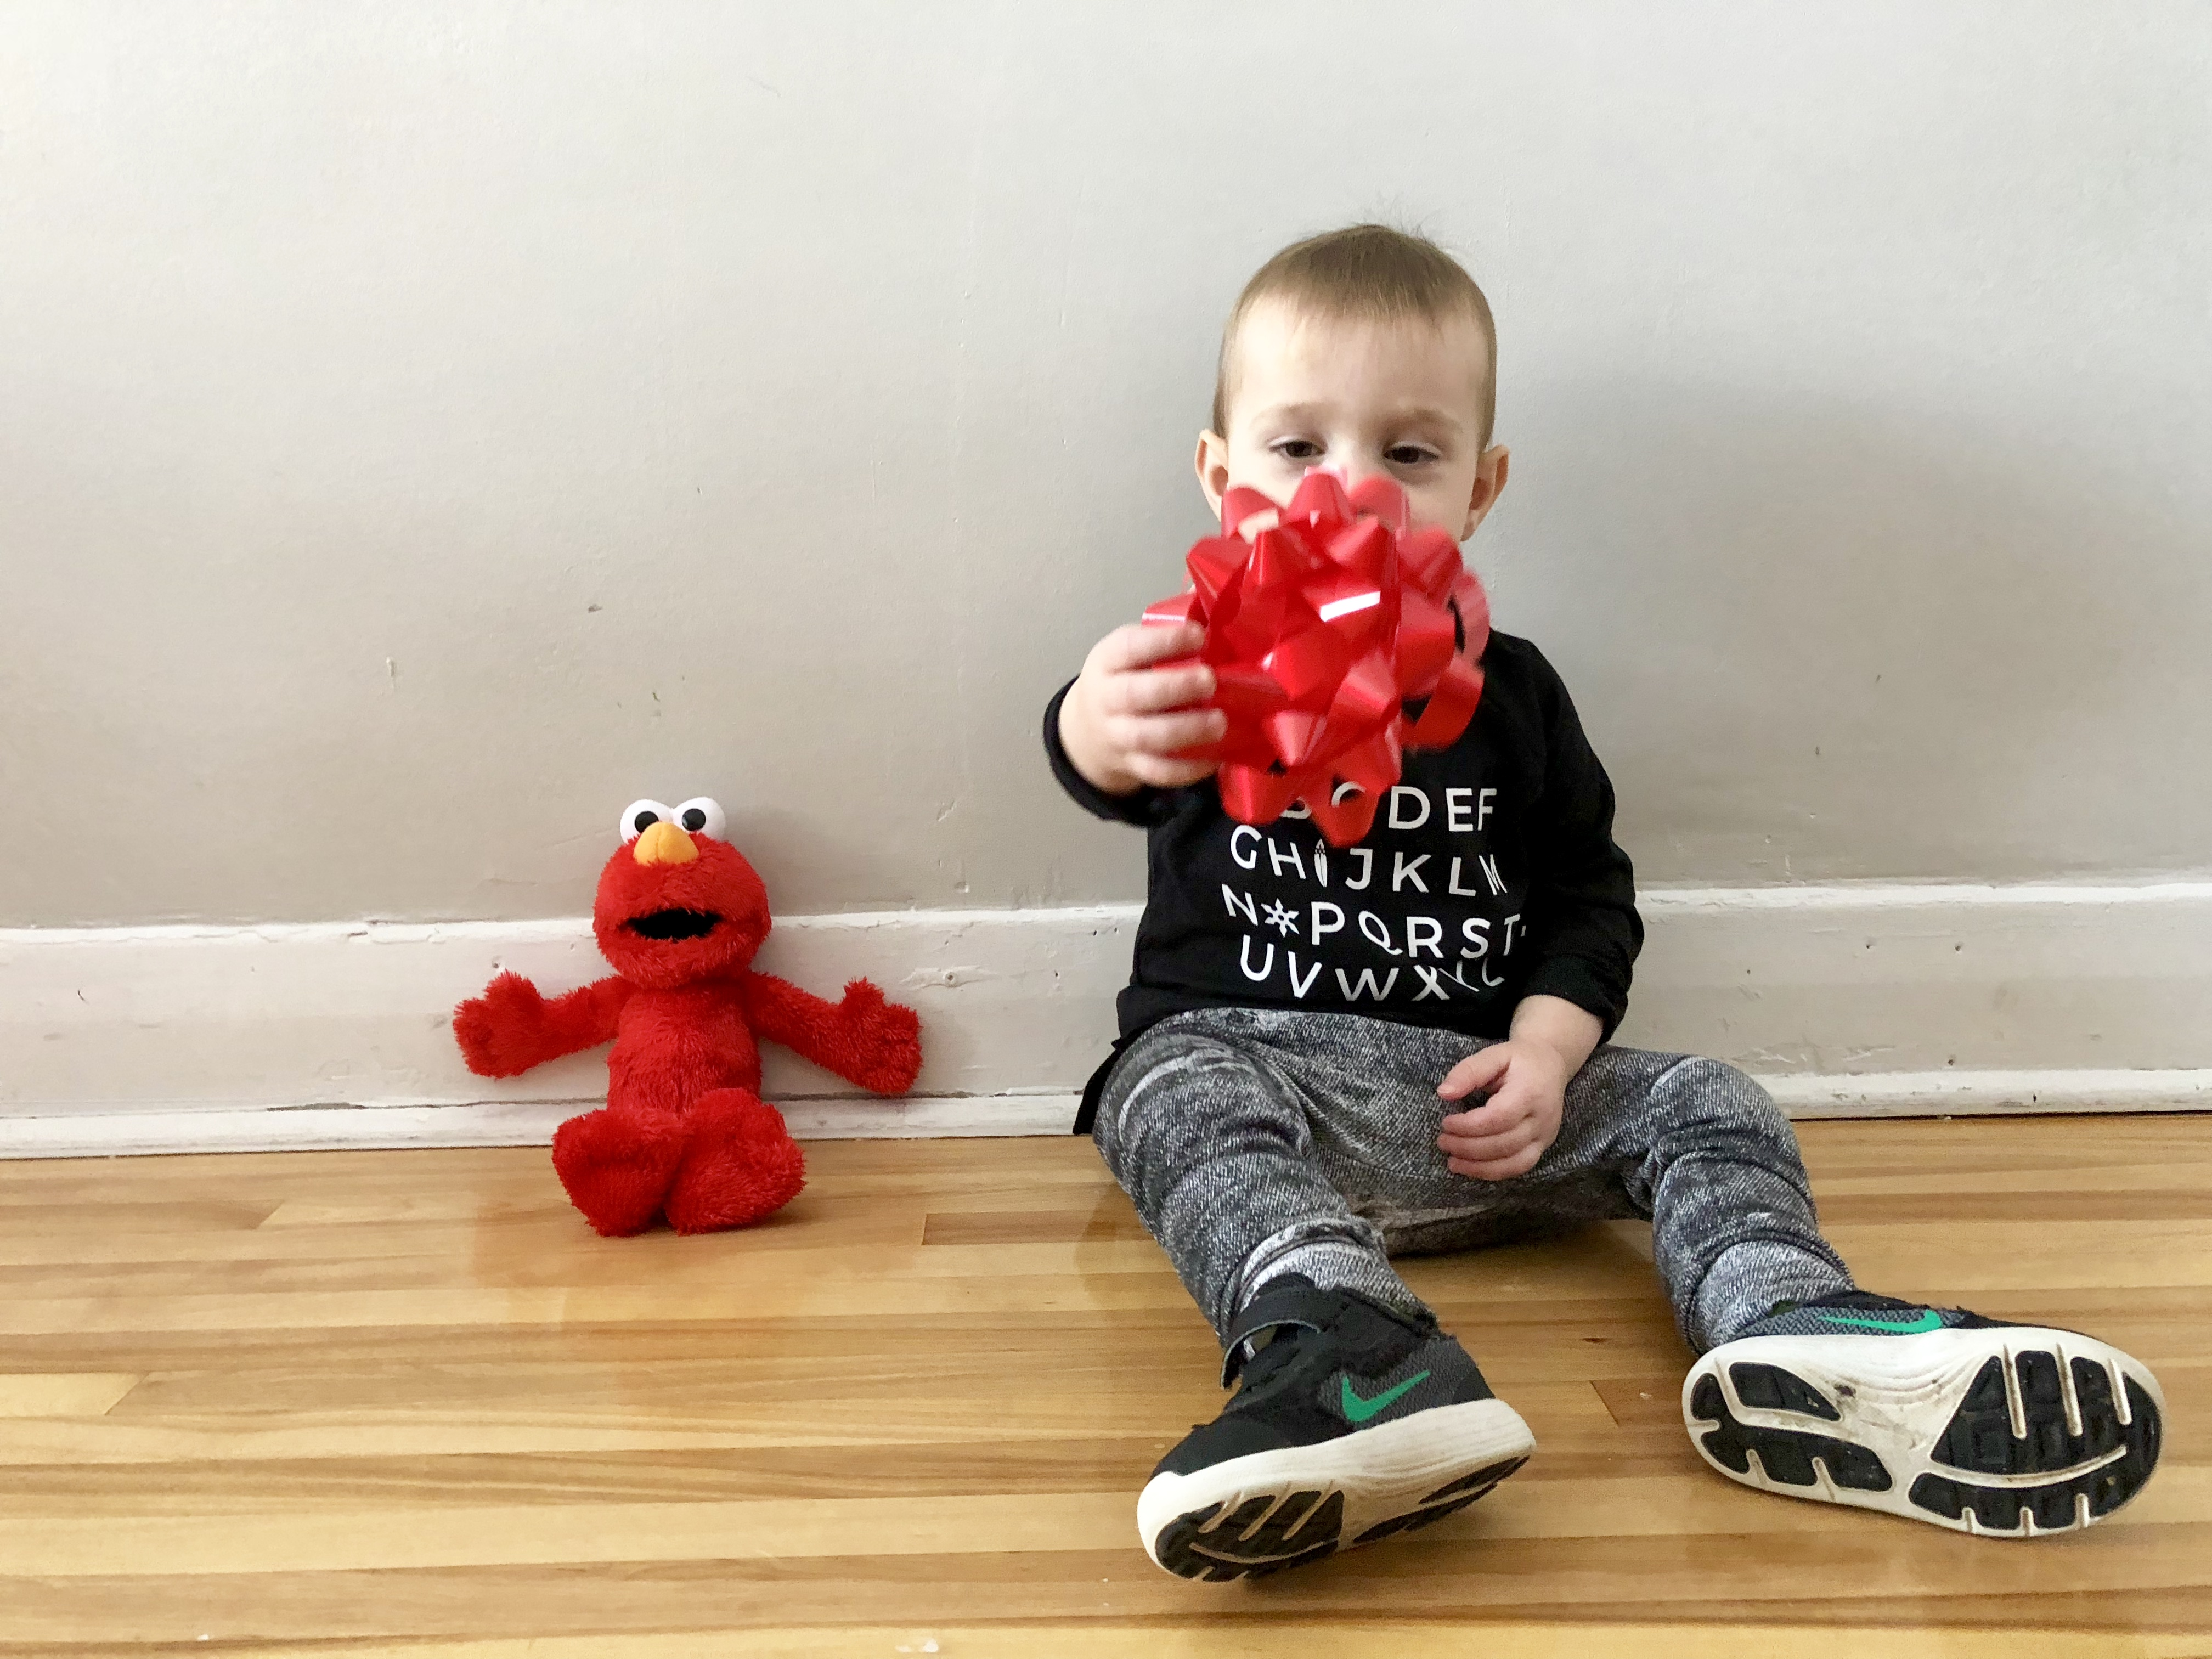 Gift Guide: What to Buy an 18 Month Old